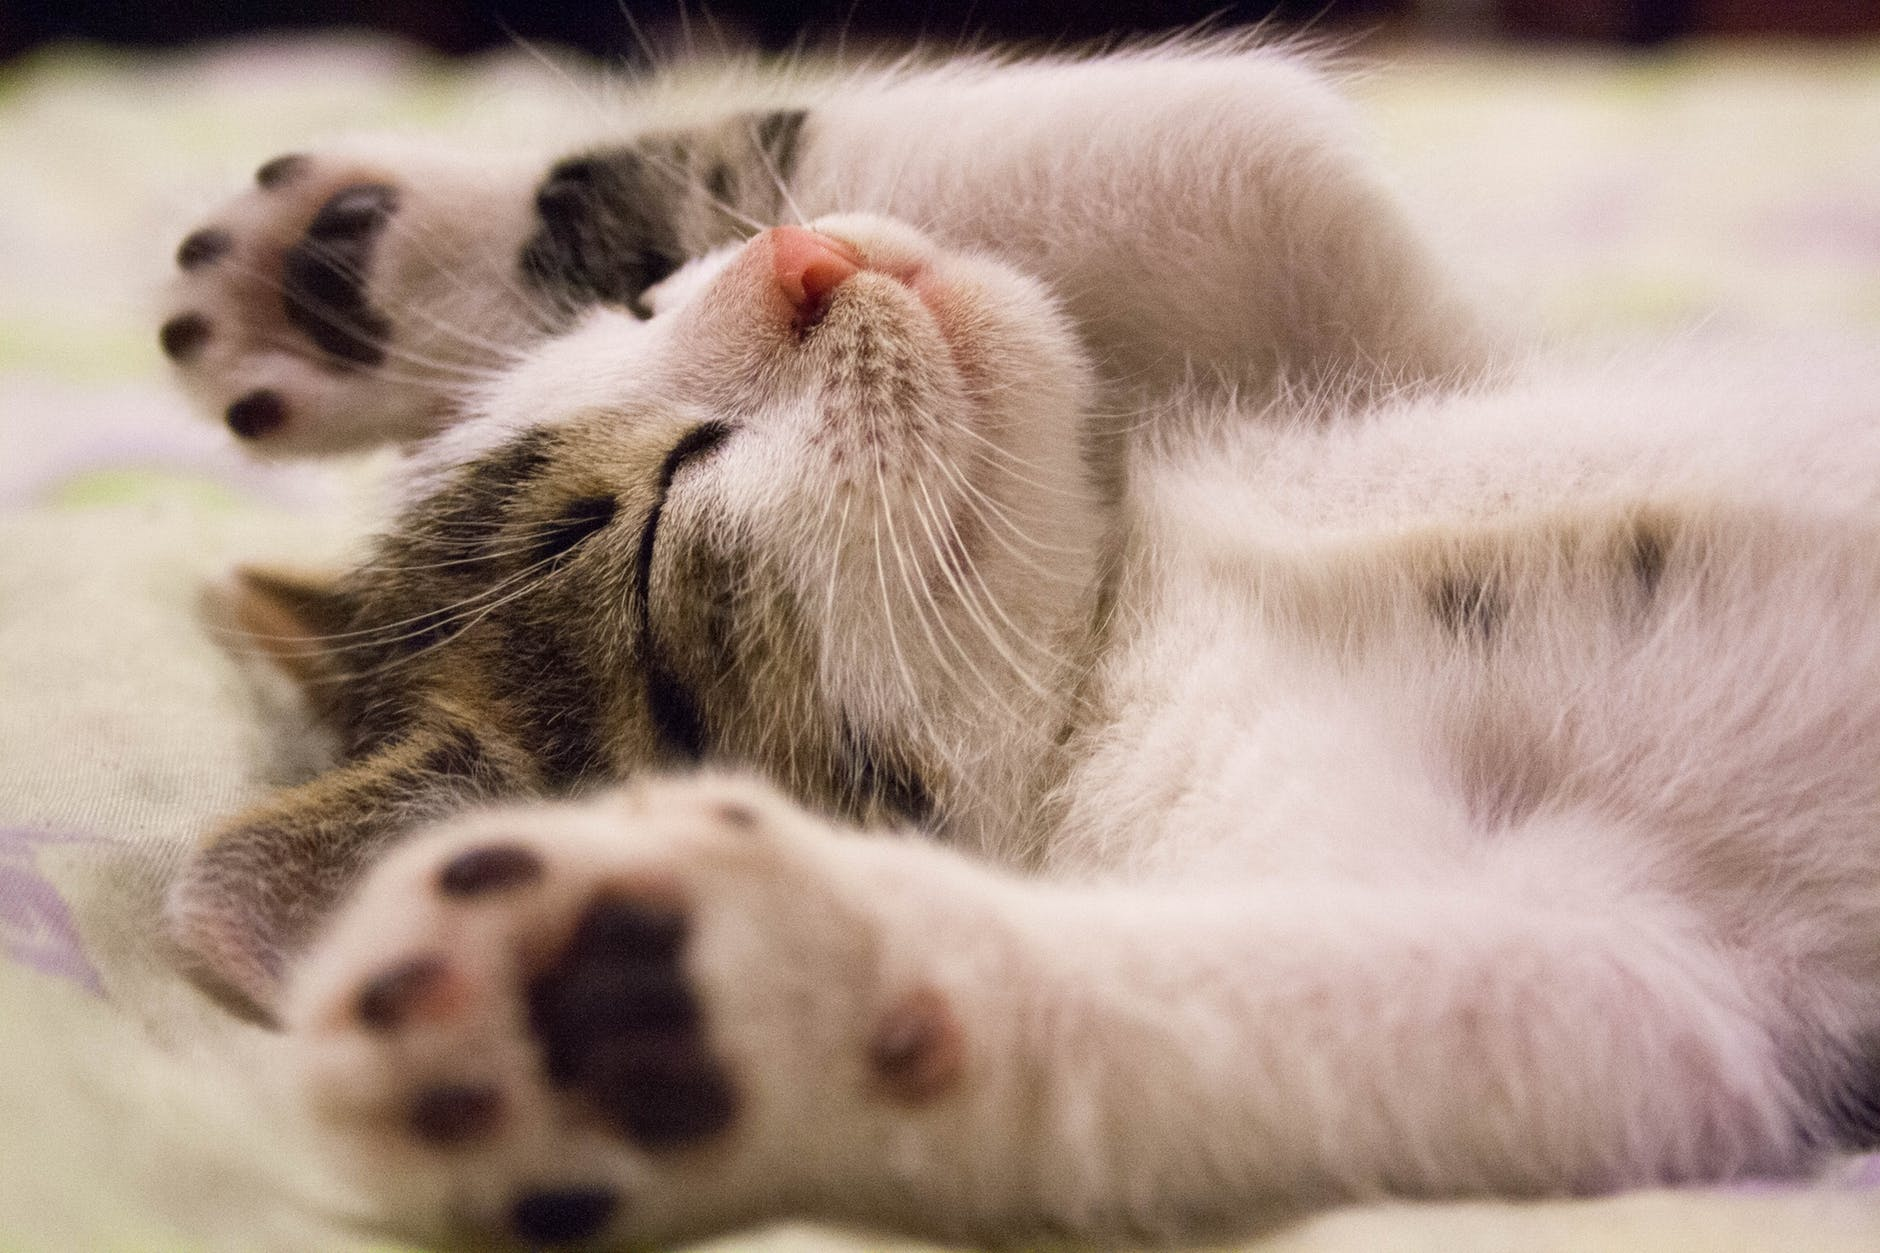 a kitten sleeping - top ten tips for refreshing sleep - life coaching for optimum wellbeing